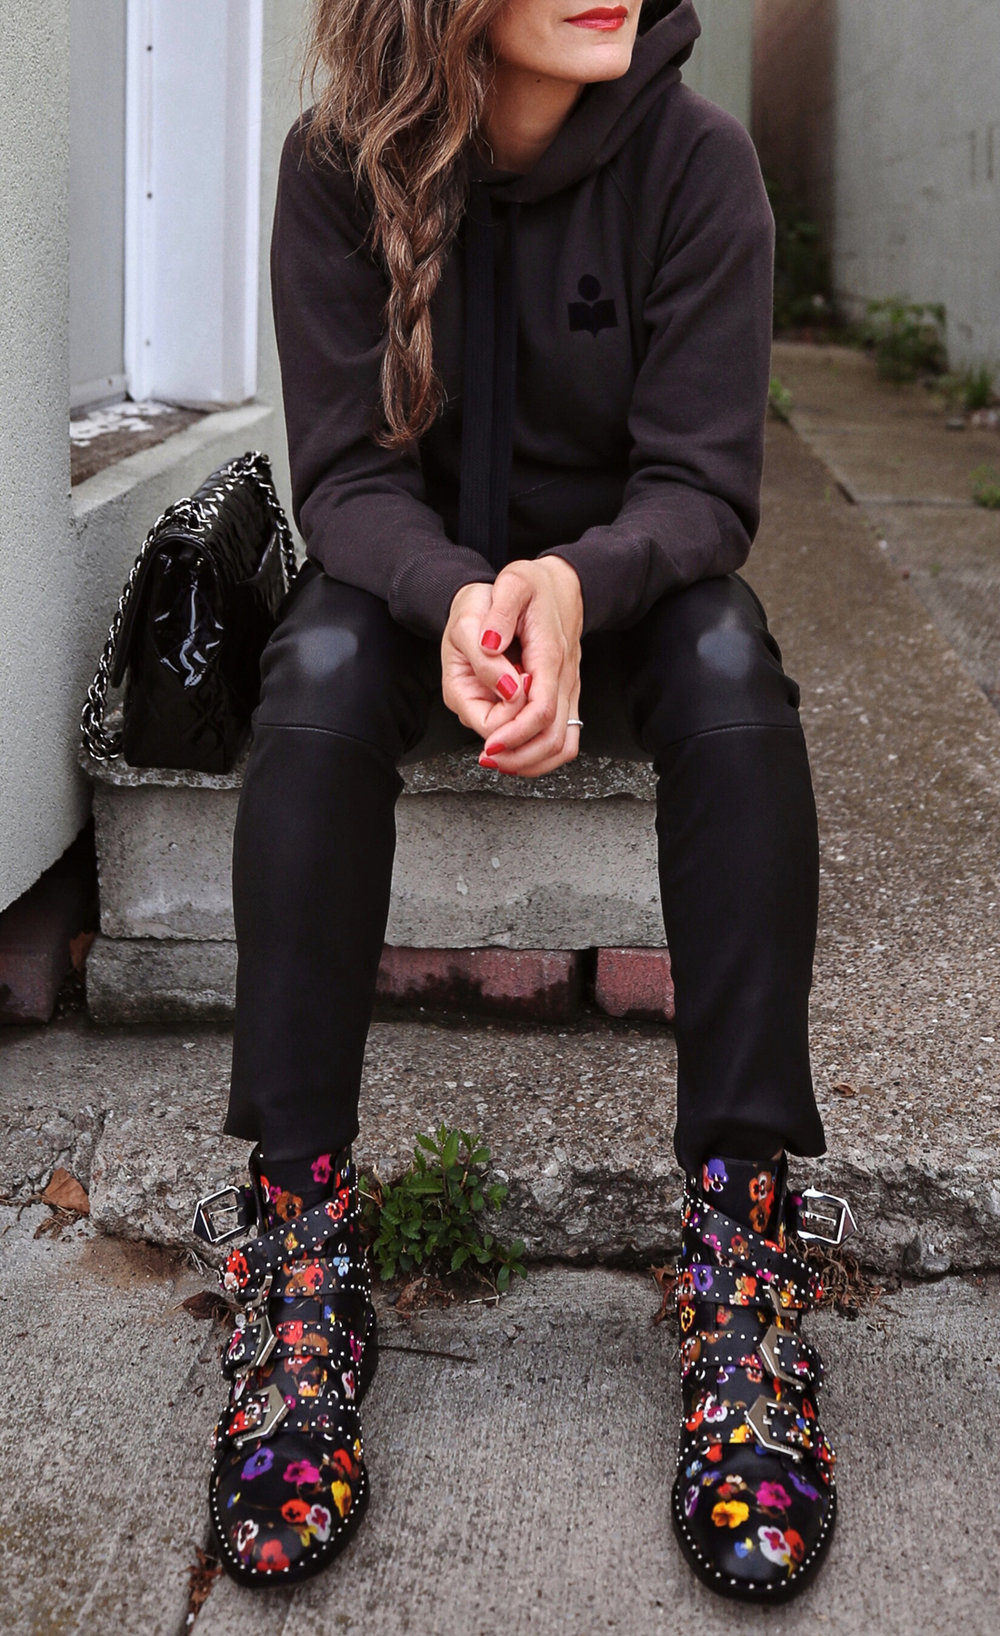 Isabel Marant Malibu Hoodie, Mackage leather jeans pants, Givenchy floral studded Elegant Line boots, Chanel patent leather flap bag - street style - woahstyle.com, nathalie martin.JPG